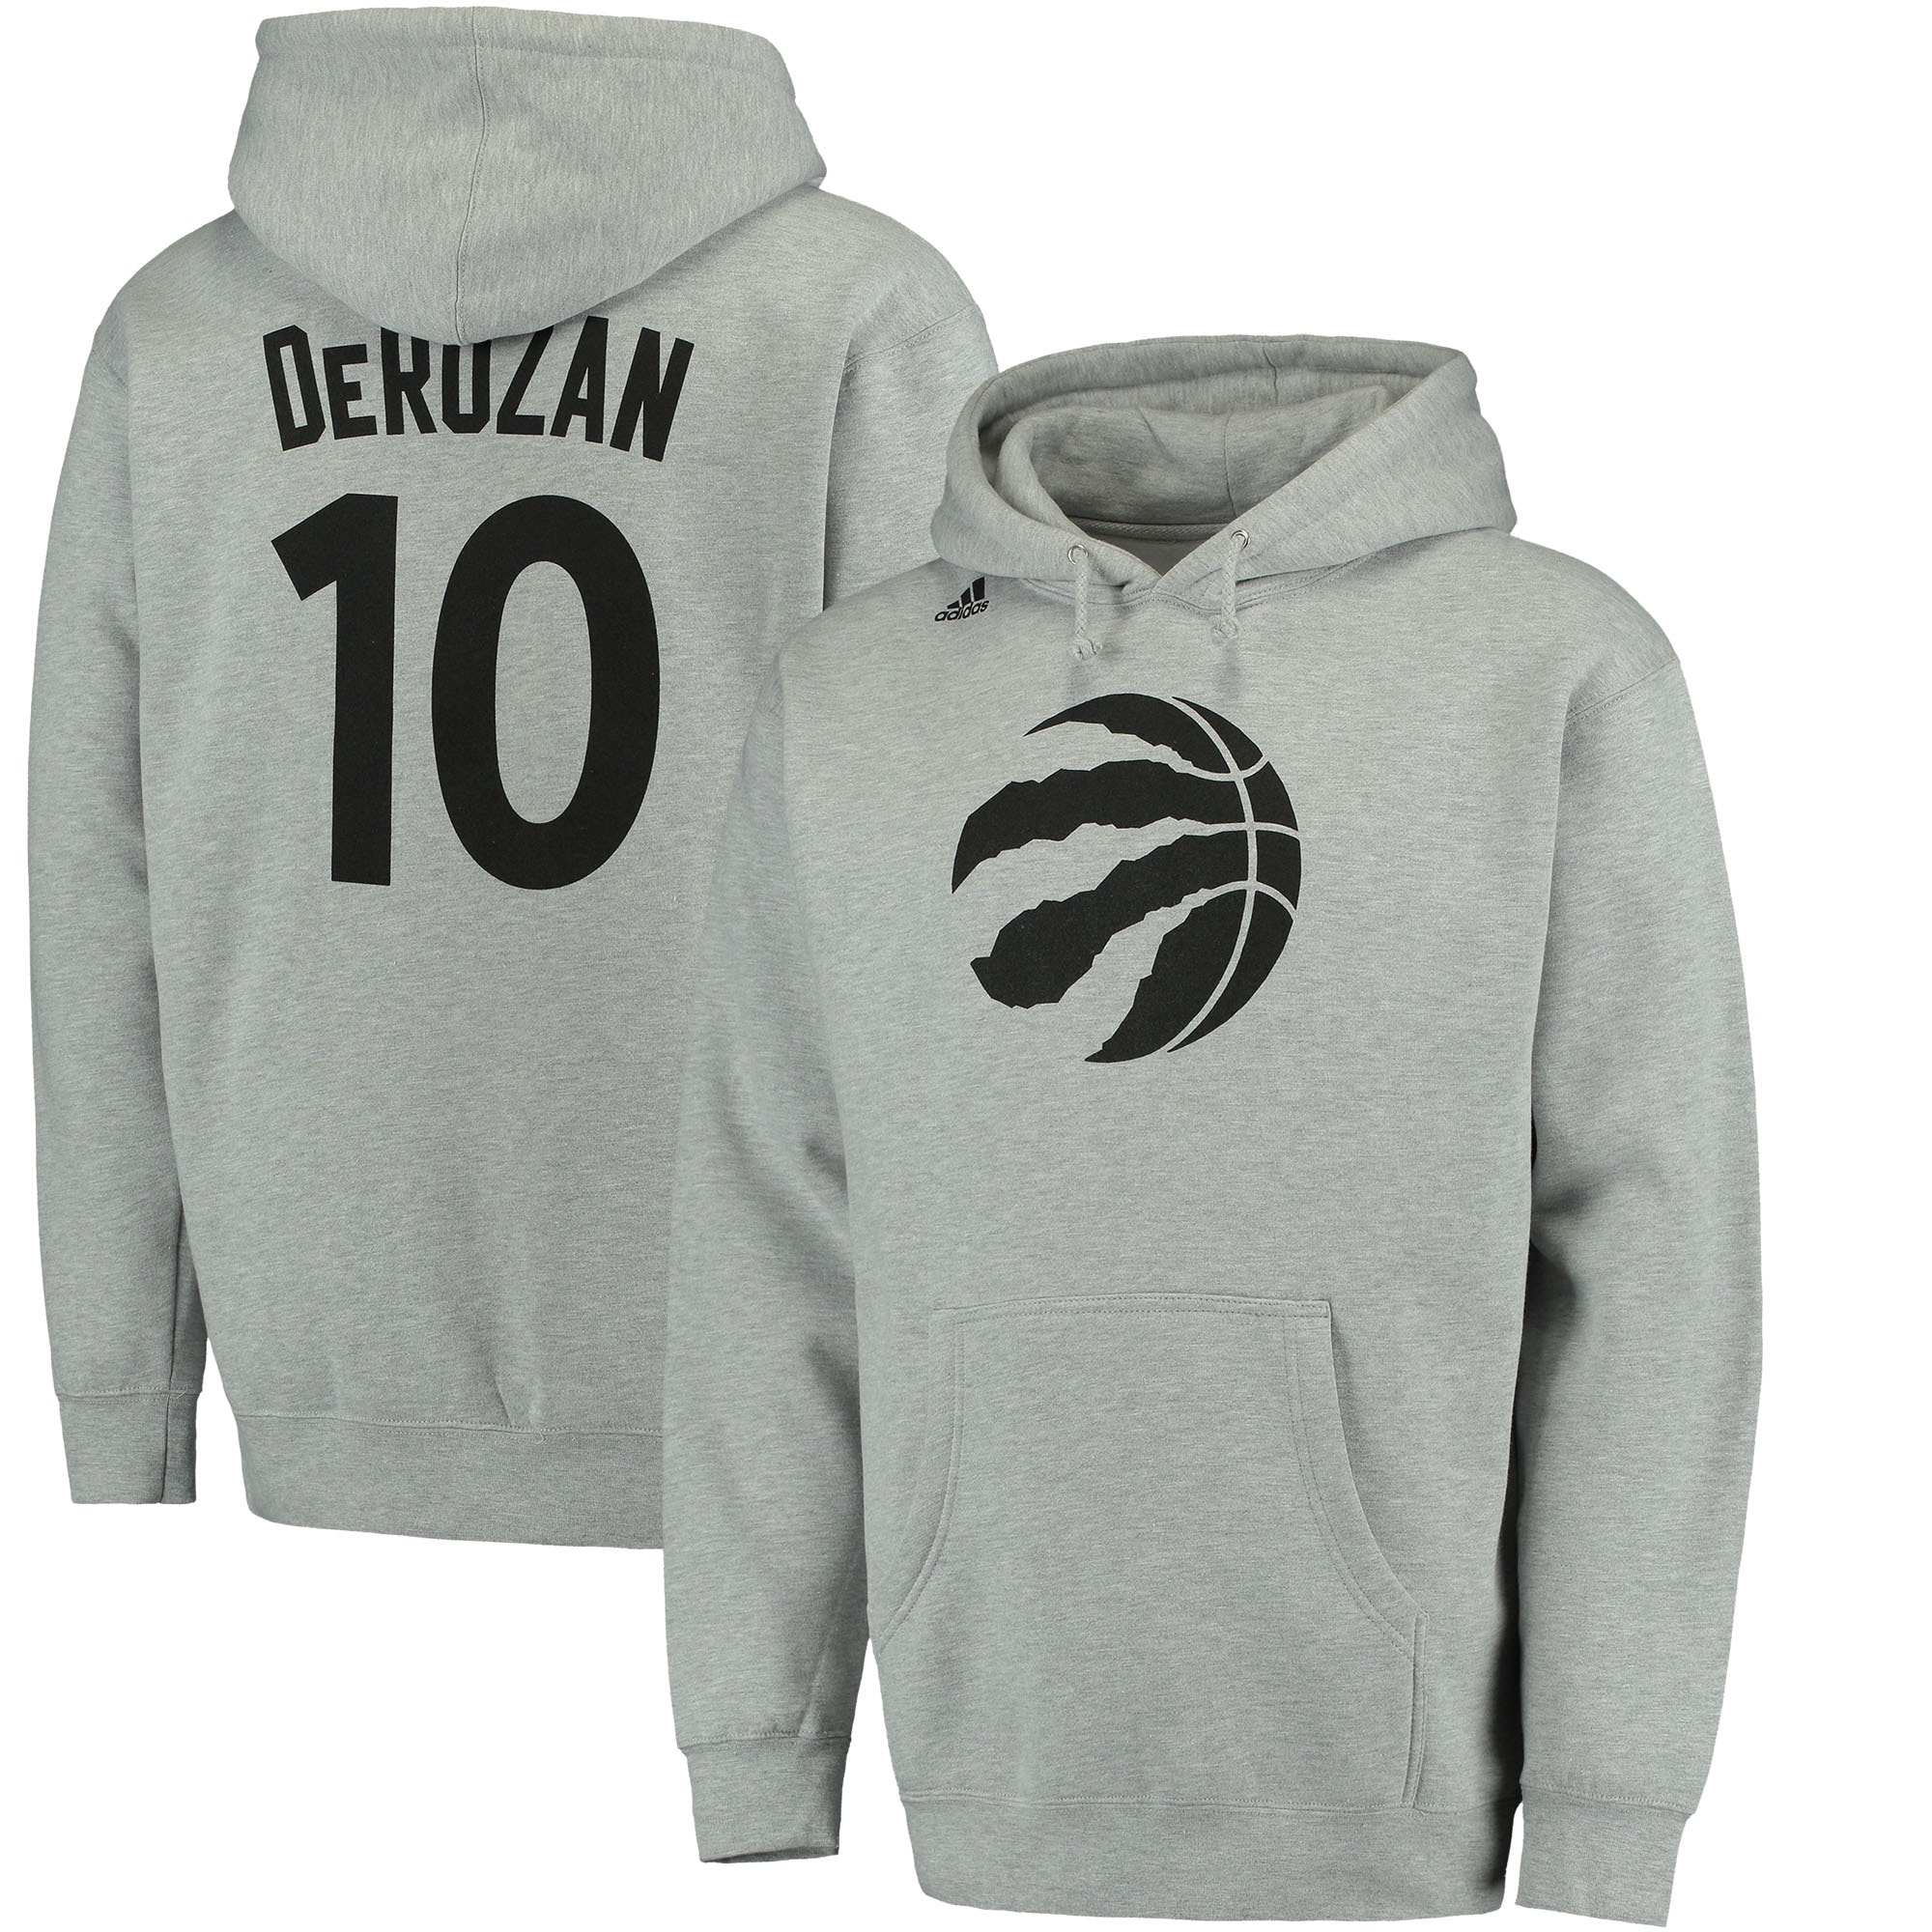 DeMar DeRozan Toronto Raptors adidas Name and Number Pullover Hoodie - Heathered Gray